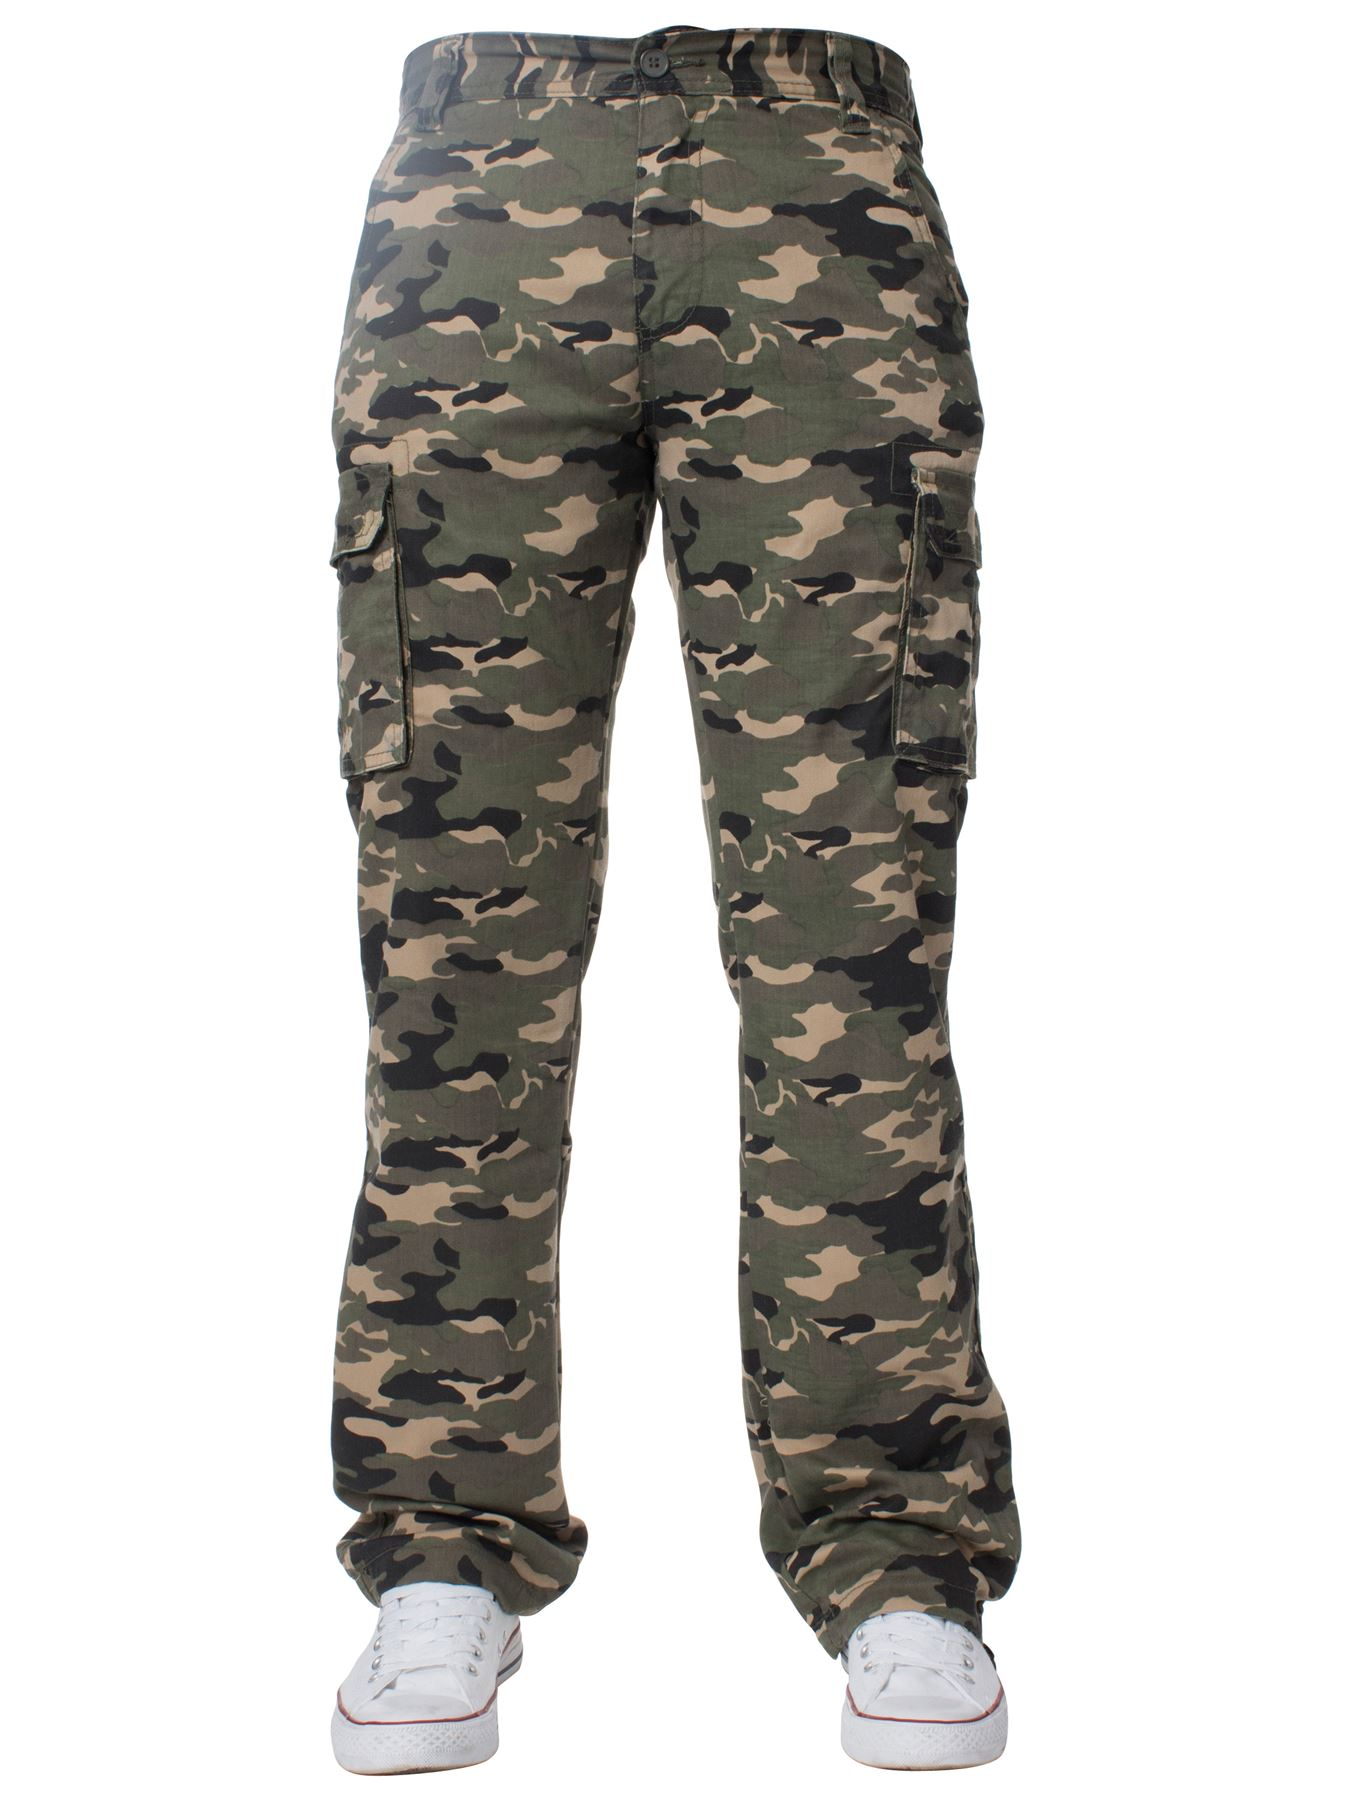 Kruze-Mens-Military-Combat-Trousers-Camouflage-Cargo-Camo-Army-Casual-Work-Pants miniatura 18